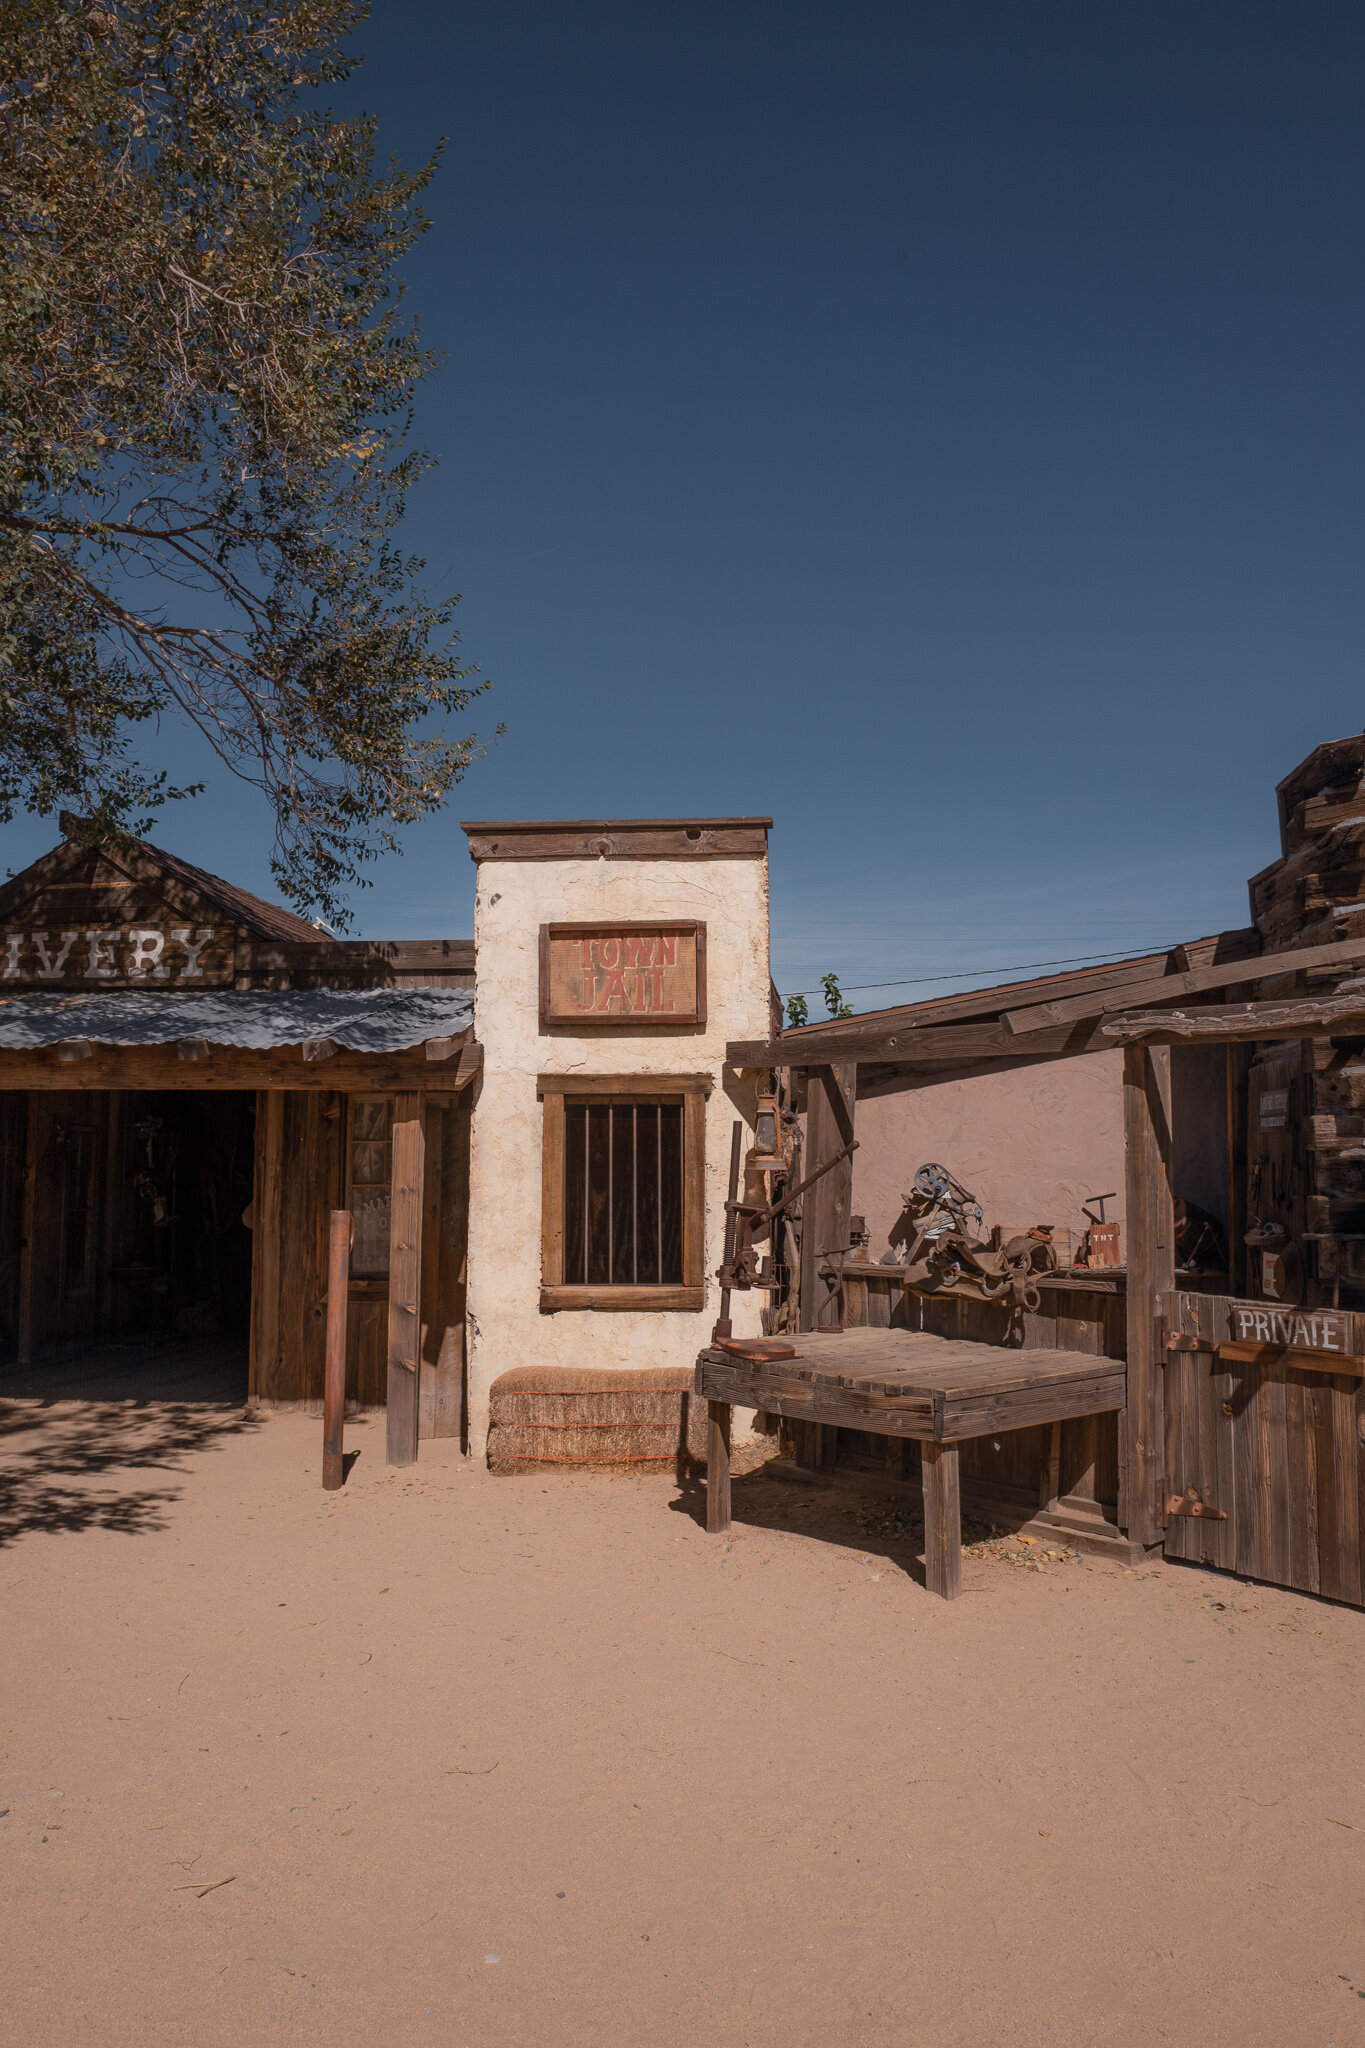 pioneer town Joshua tree guide